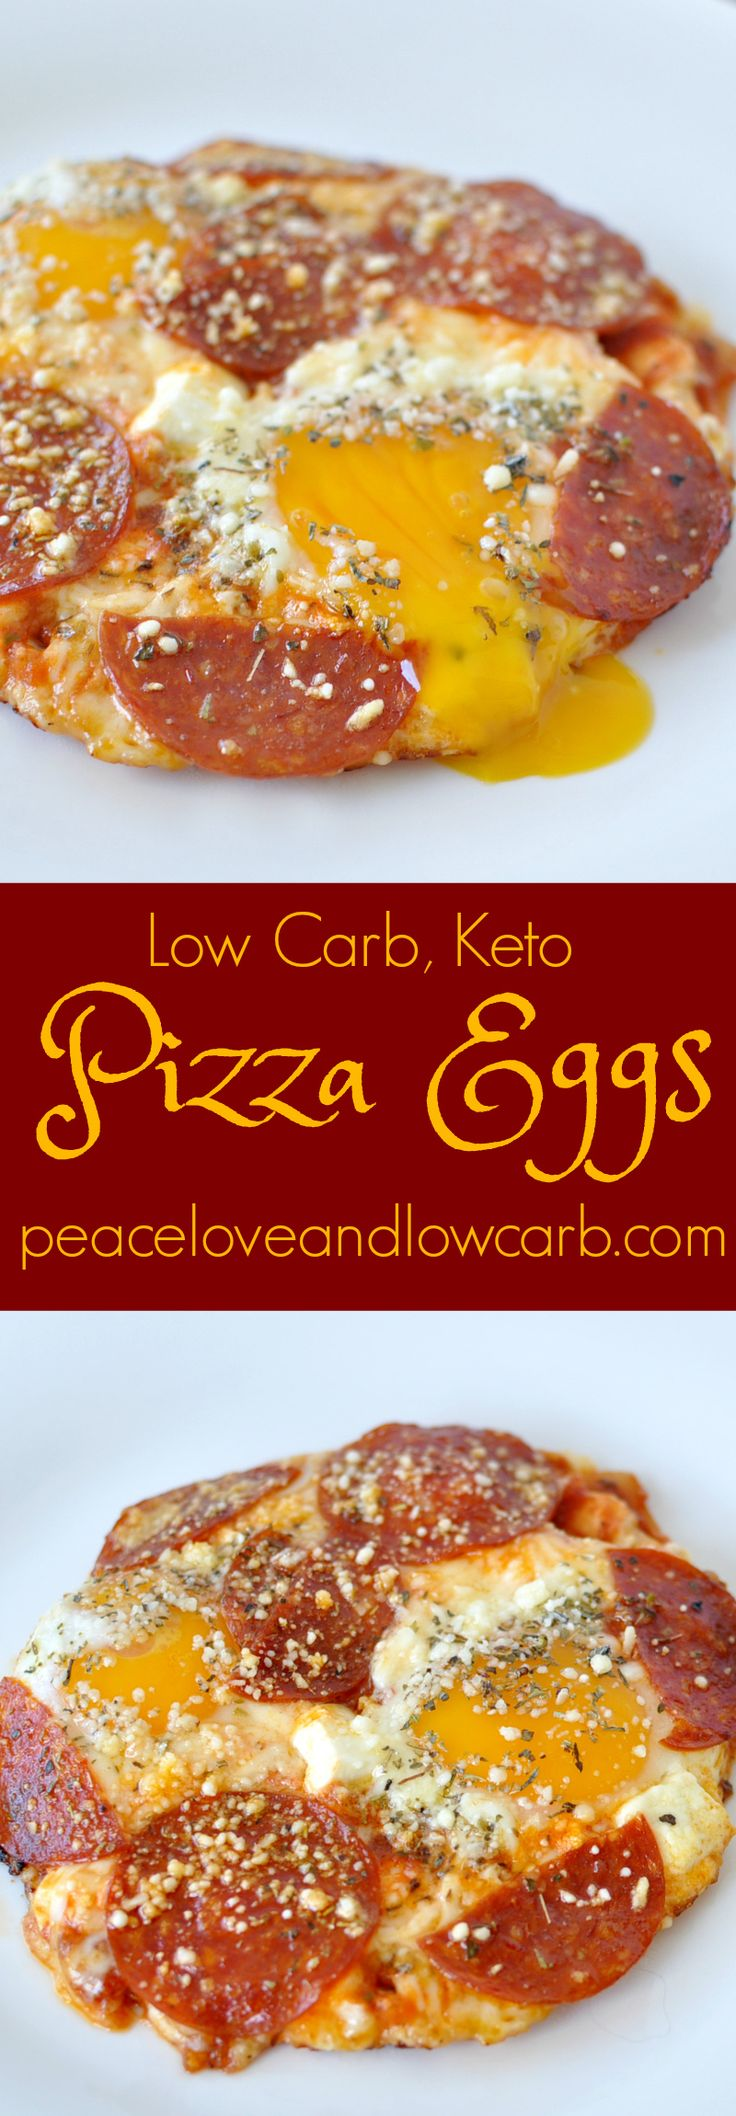 Best 25 keto fast food ideas on pinterest keto fast food best 25 keto fast food ideas on pinterest keto fast food options carb cycling and starch food list forumfinder